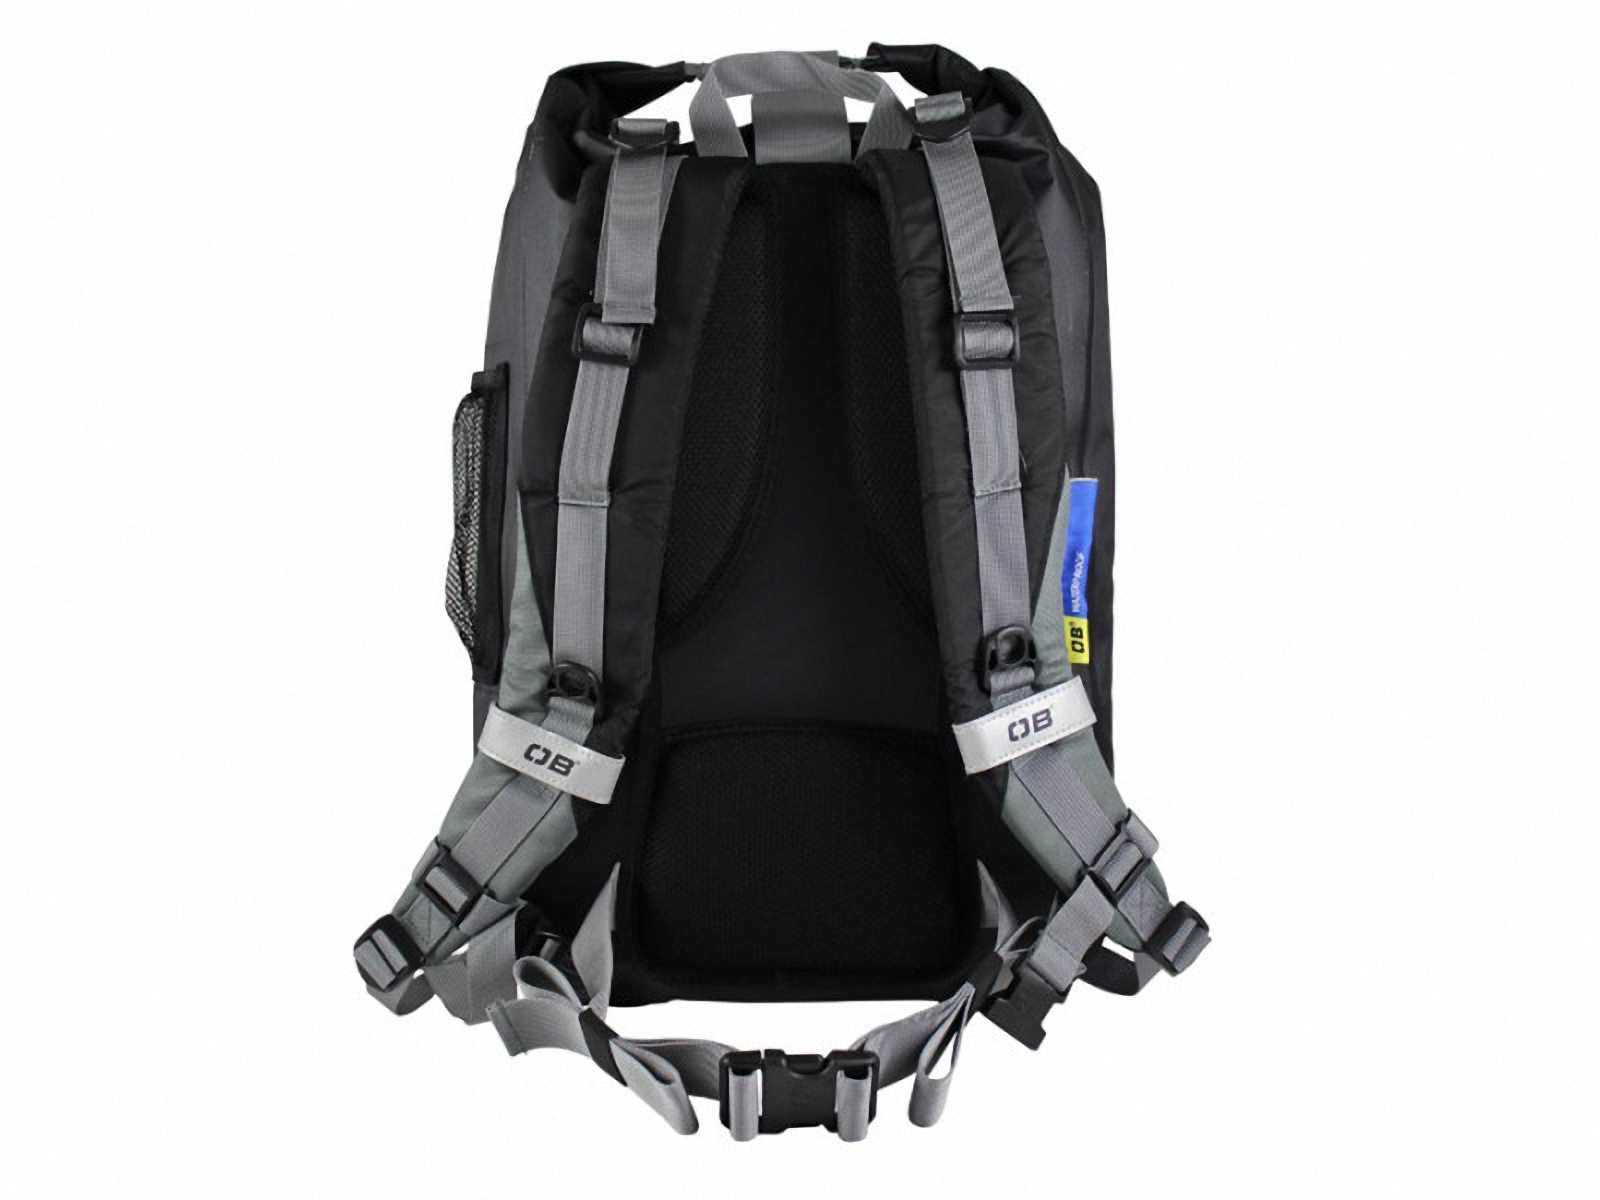 Водонепроницаемый рюкзак OverBoard OB1136BLK - Ultra-light Pro-Sports Waterproof Backpack - 30L. Фото 2